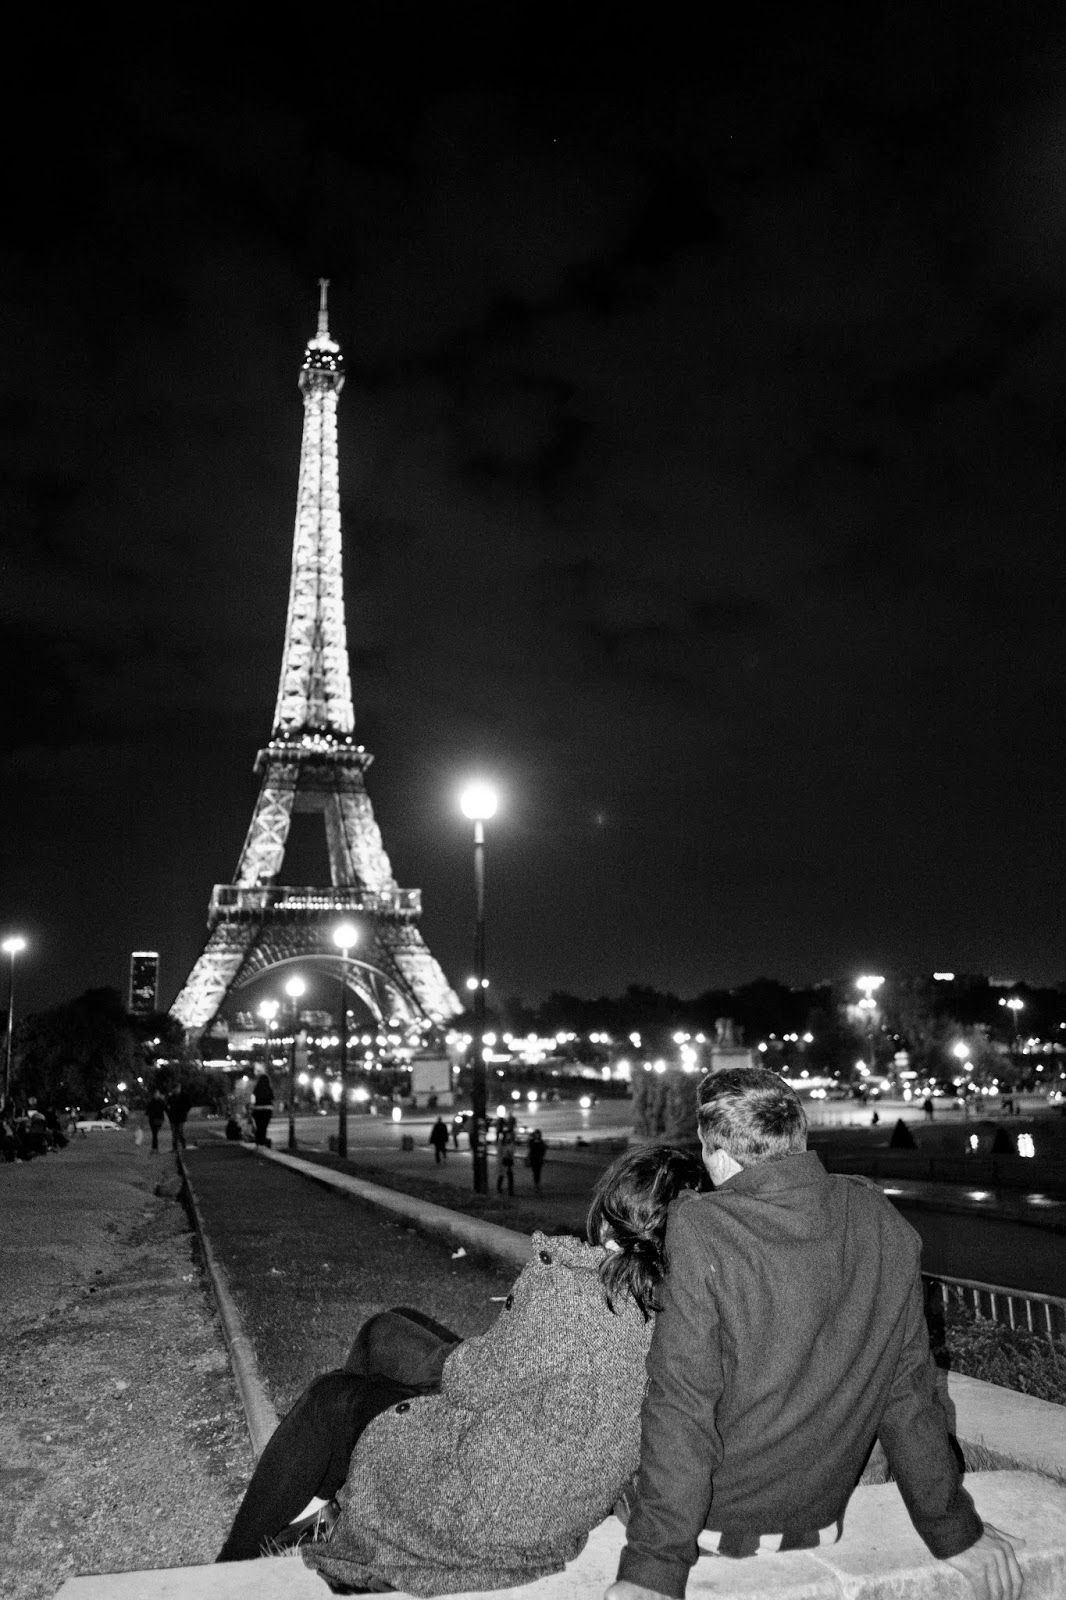 Romantic night in front of the Eiffel Tower